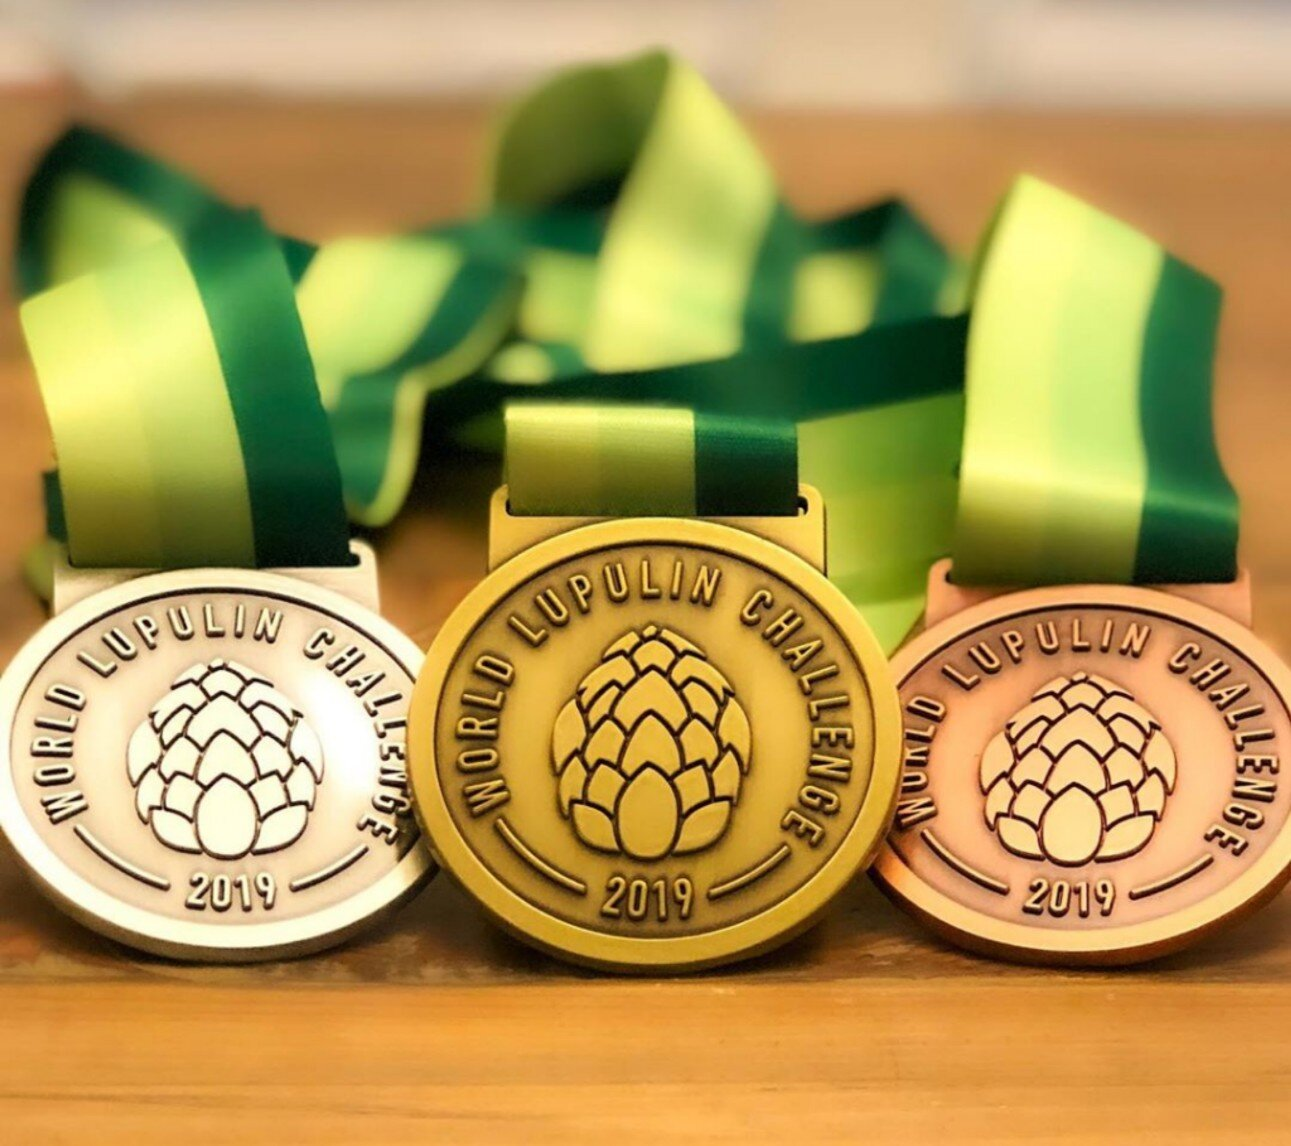 2019 World Lupulin Challenge - Gold Medal winner Sens Lives Session IPABronze Medal winner Quarry Juice DIPA